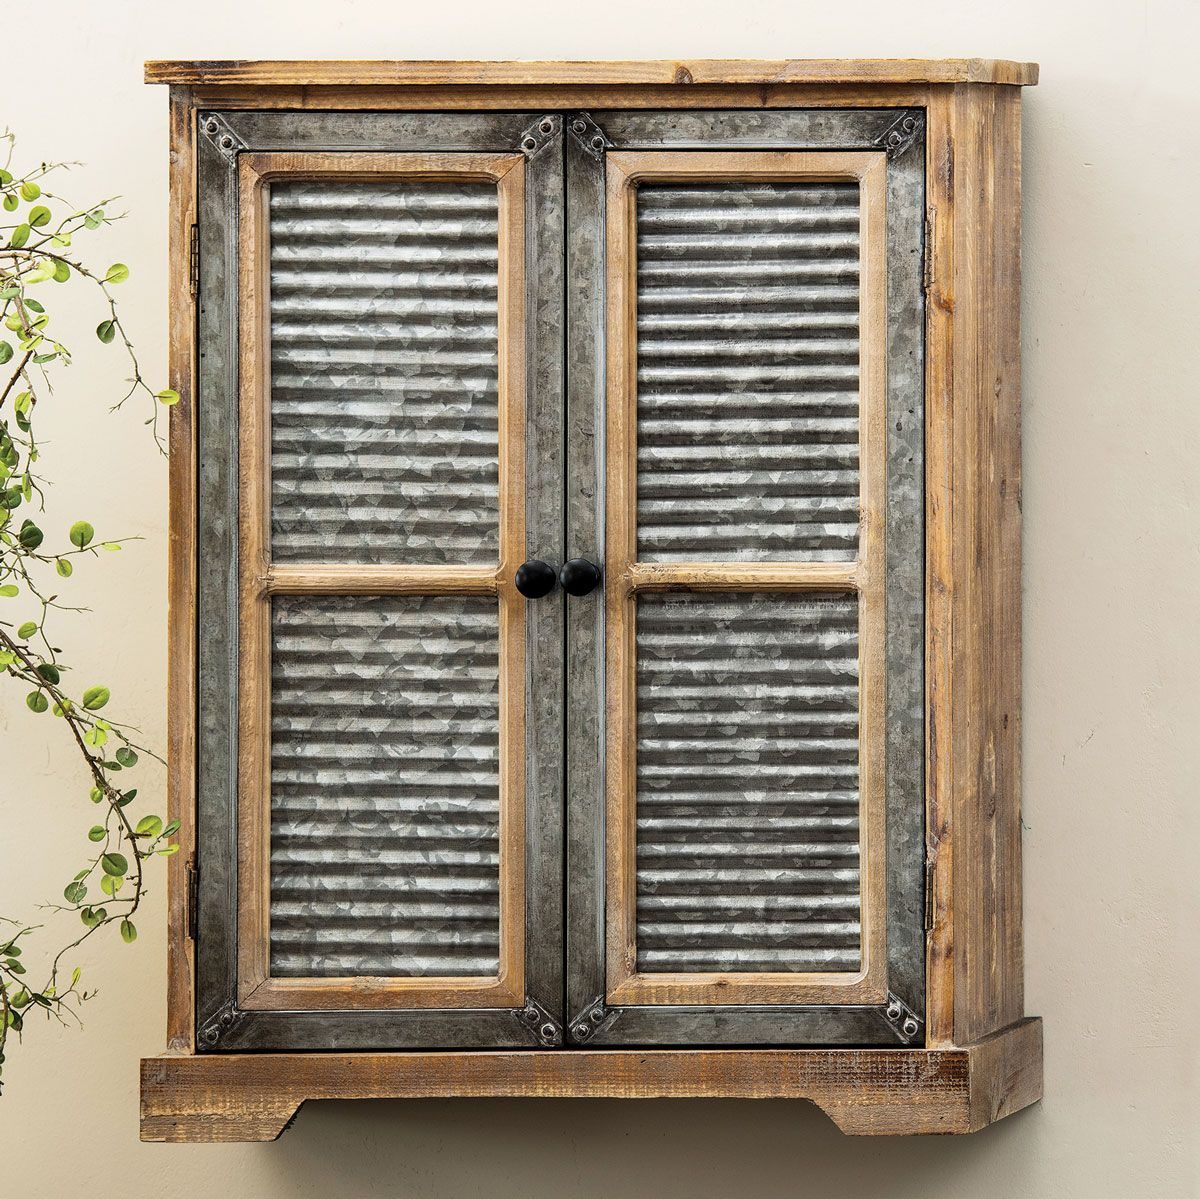 Deadwood Corrugated Metal Wall Cabinet - OUT OF STOCK